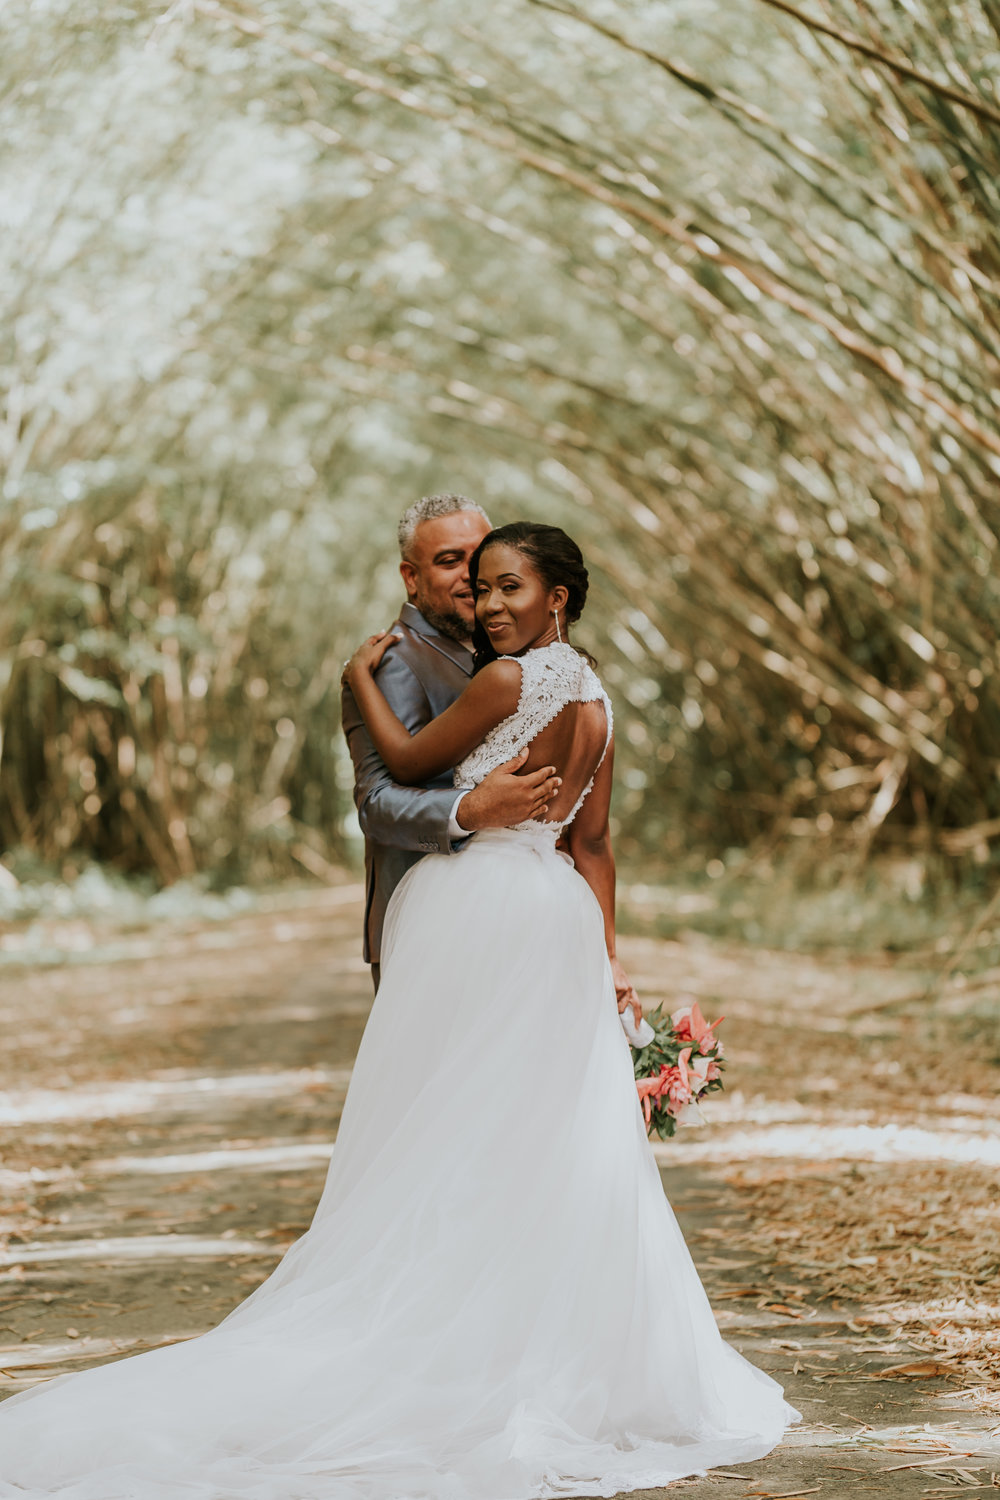 Our Wedding (The Mauge's')-24.jpg